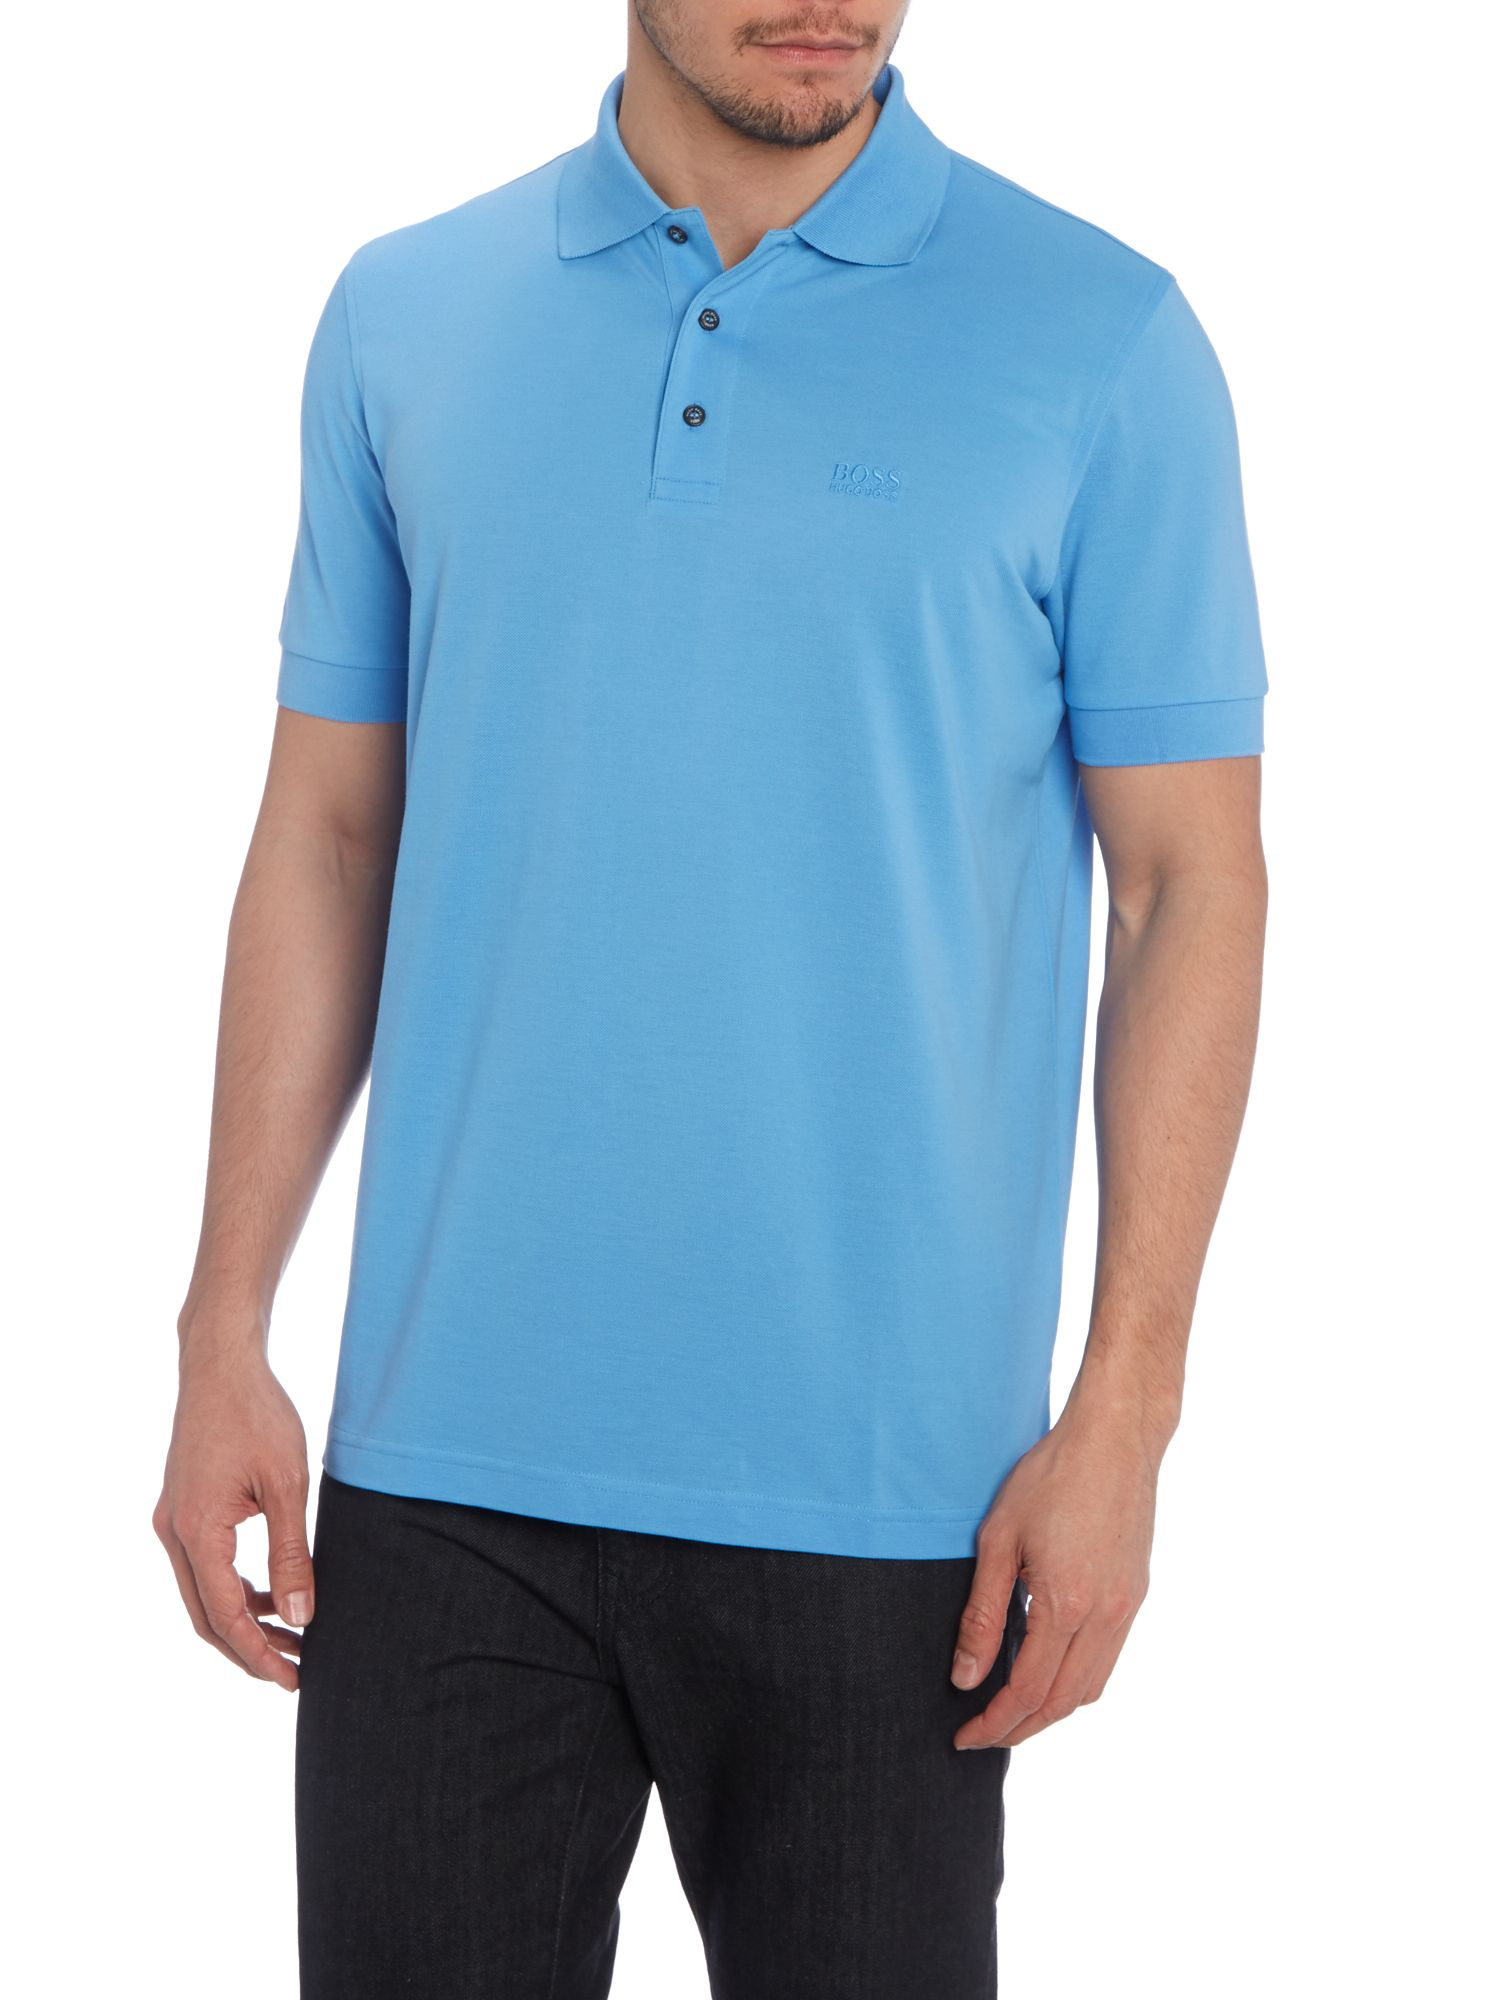 Short sleeve ferrara logo polo shirt